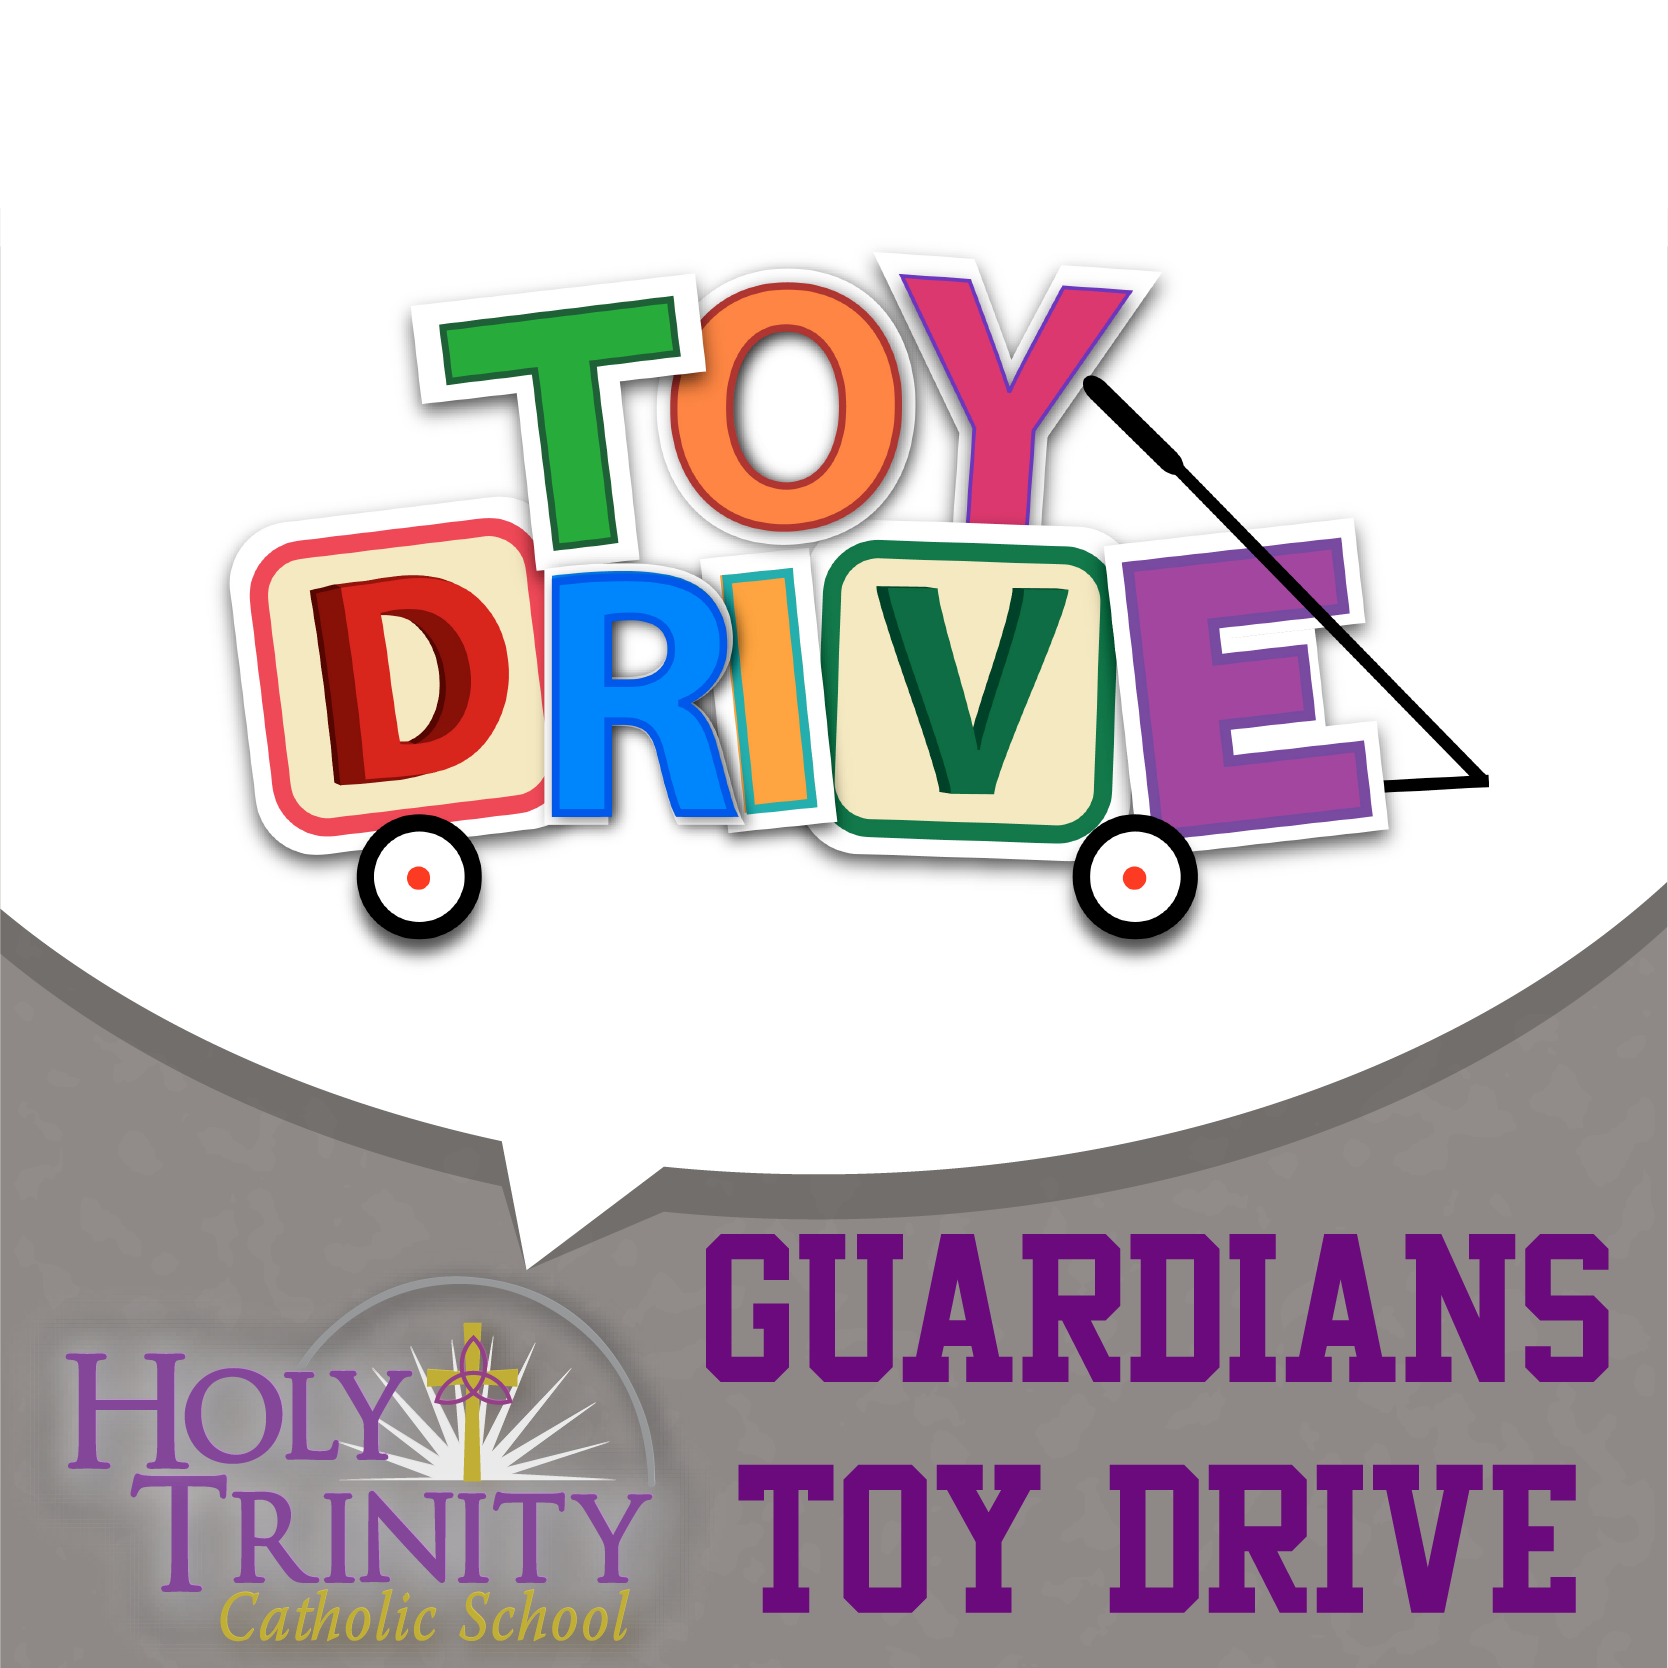 HTCS All School Service Projects – Christmas Toy Drive